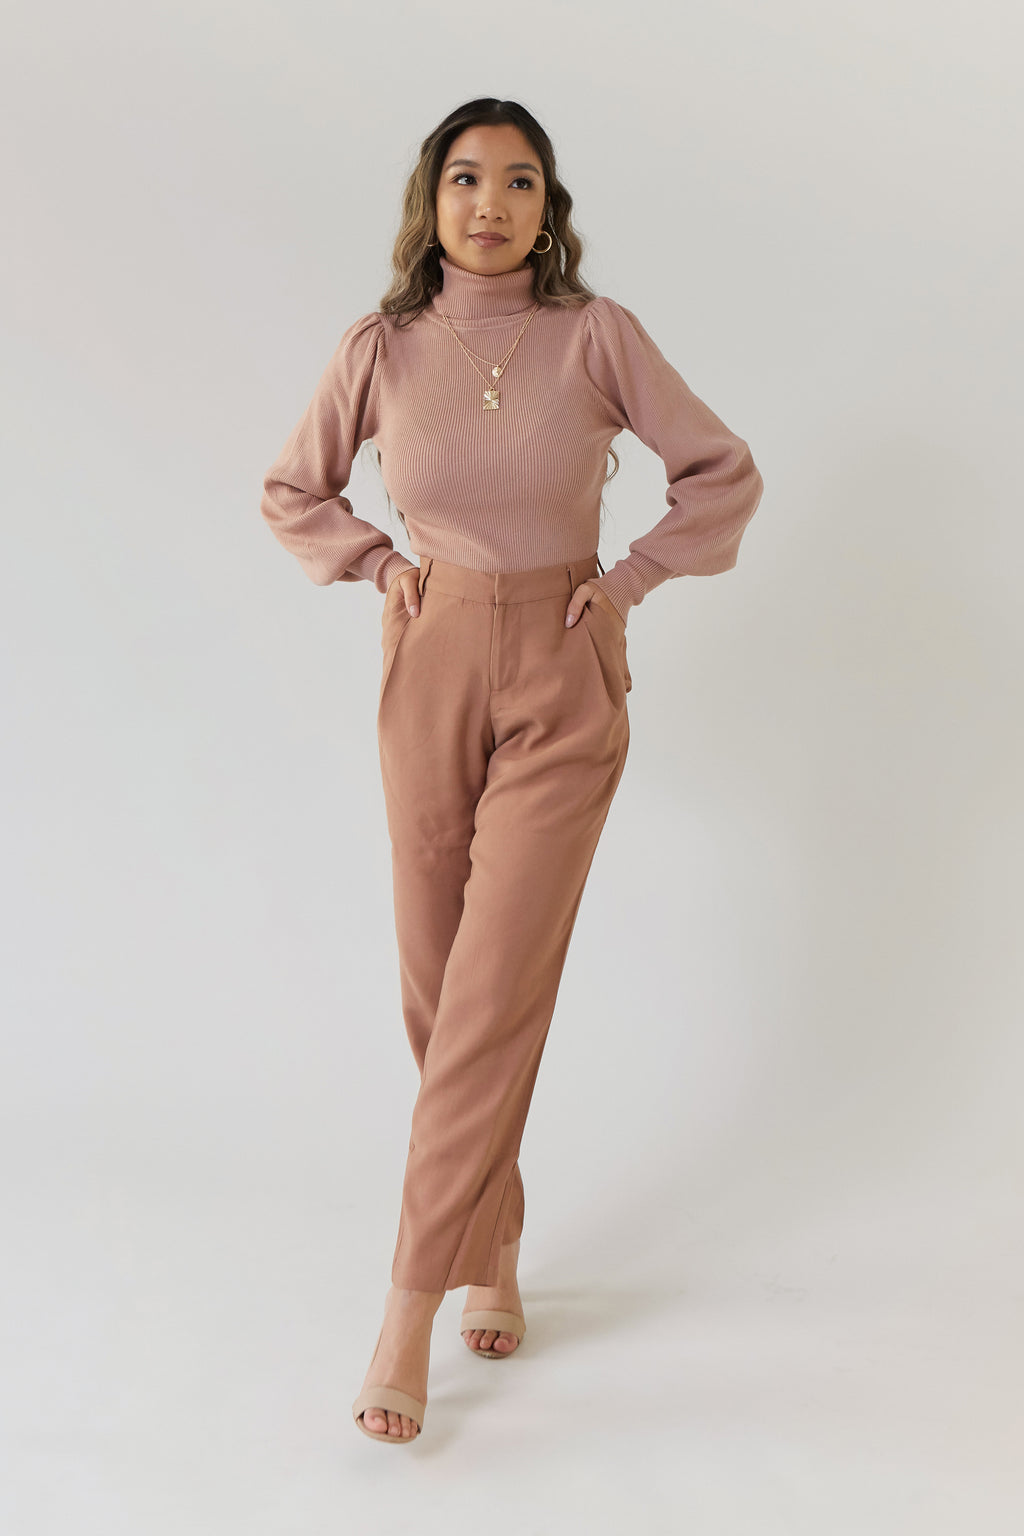 wild rina wildrina.com tapered high waist pants trousers red brown tan beige button skinny linen pant